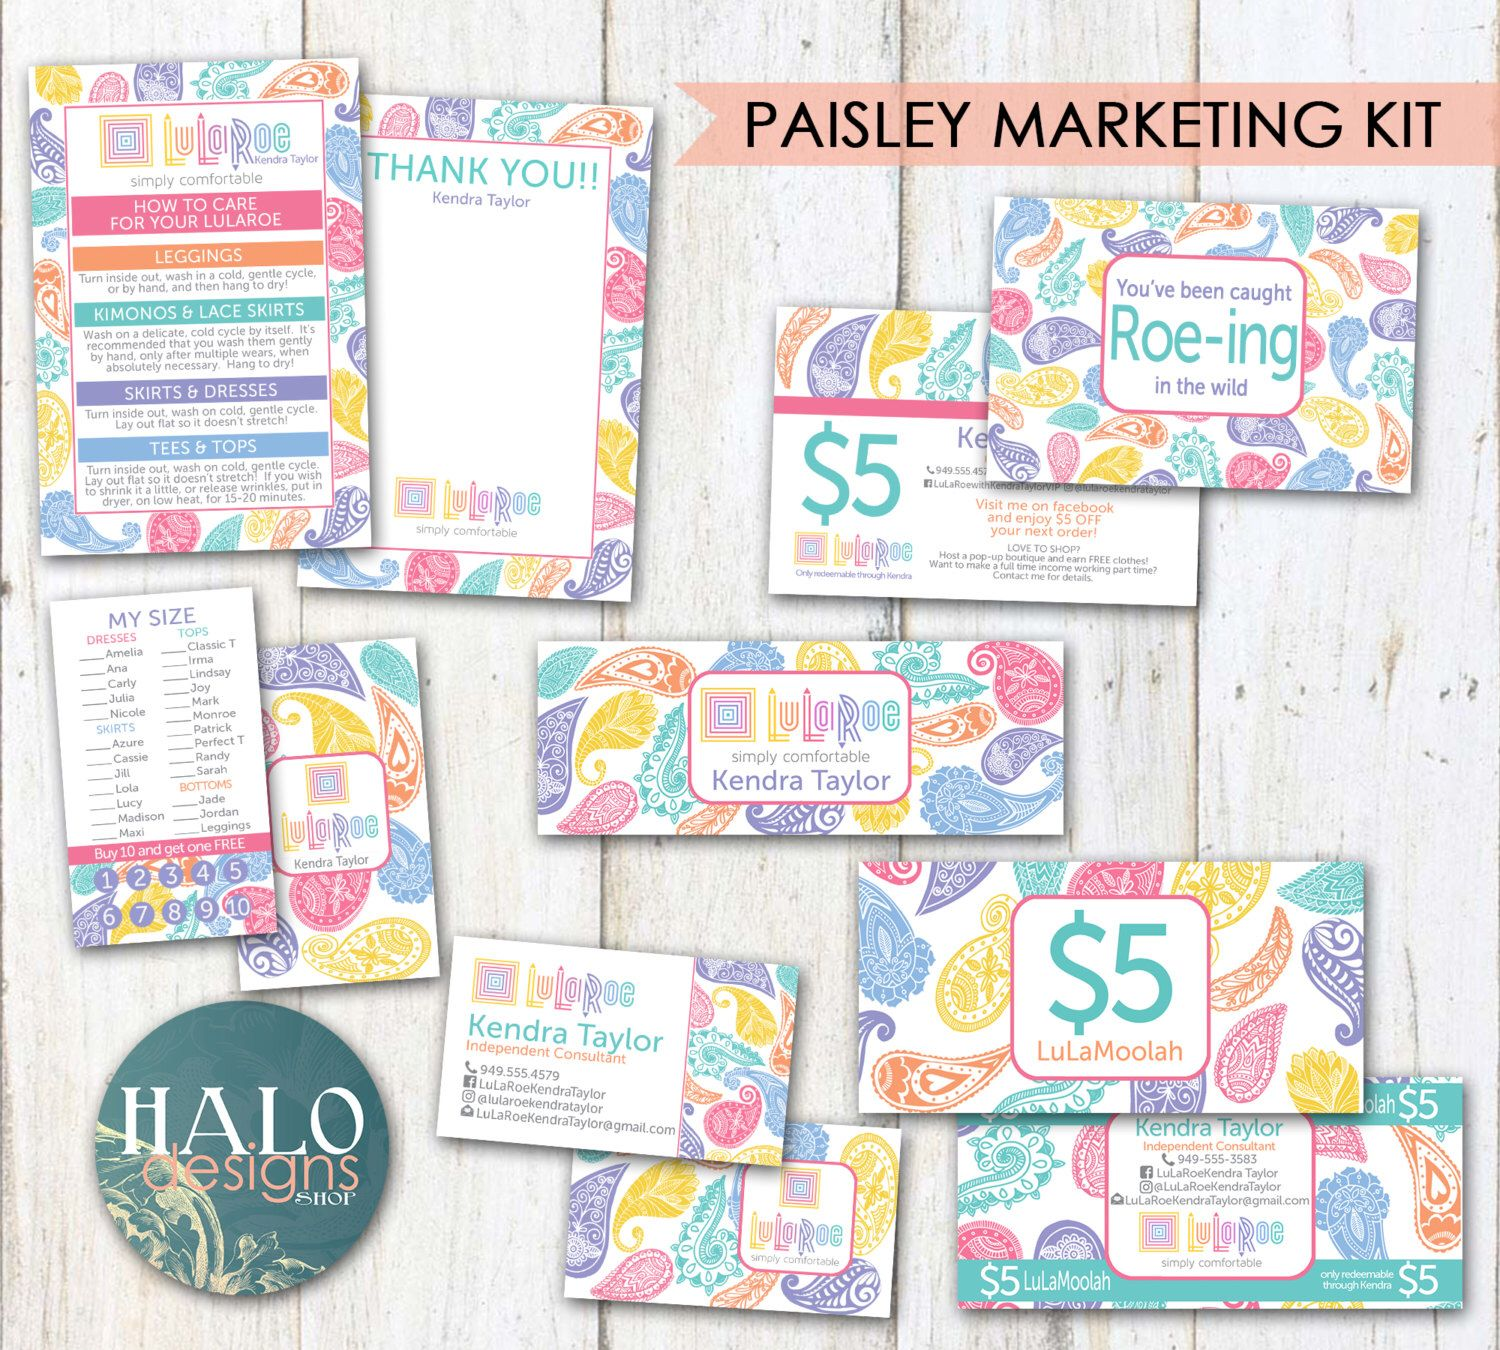 Paisley - business cards, thank you cards, size cards, care cards ...